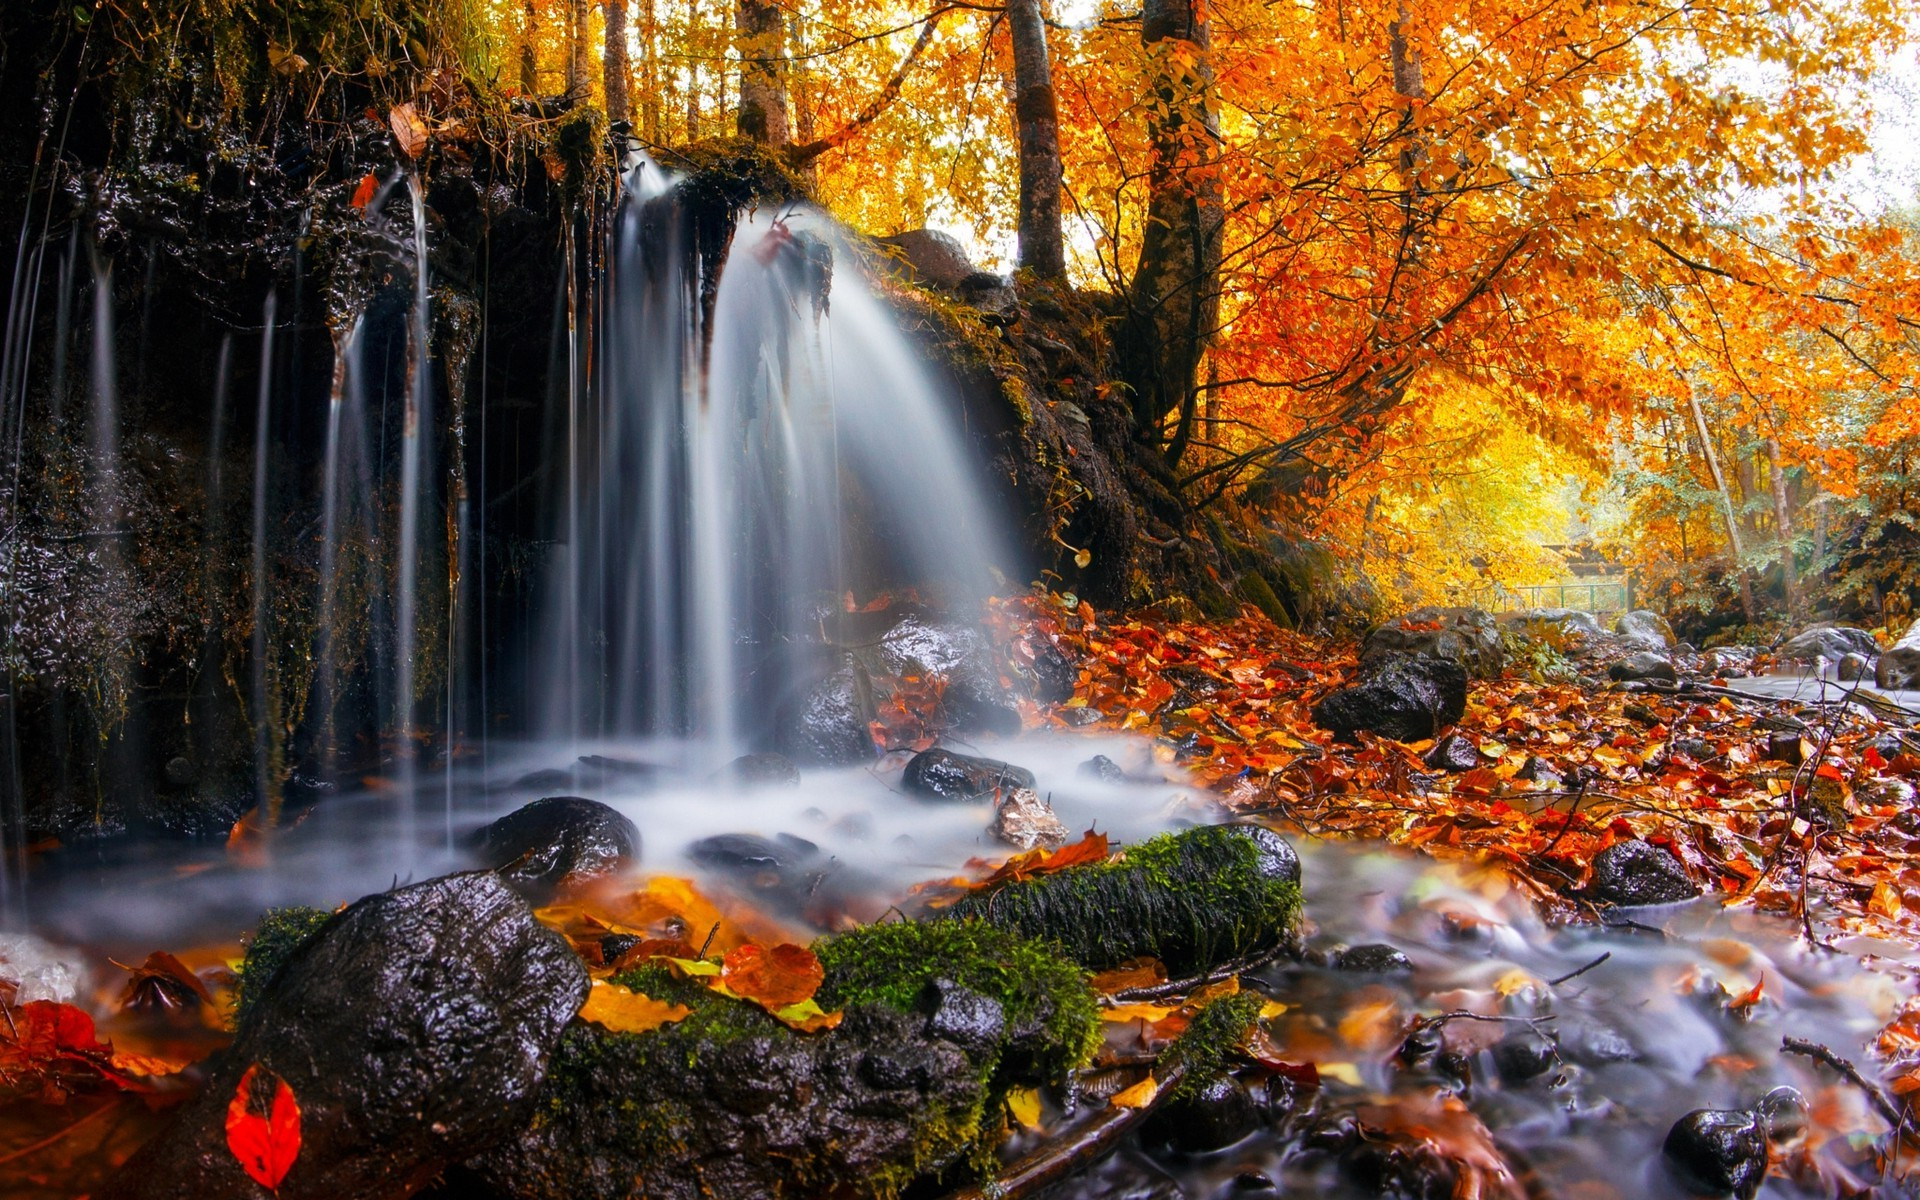 Fall Leaf Wallpaper For Mobile Nature Landscape Waterfall Trees Leaves Fall Moss